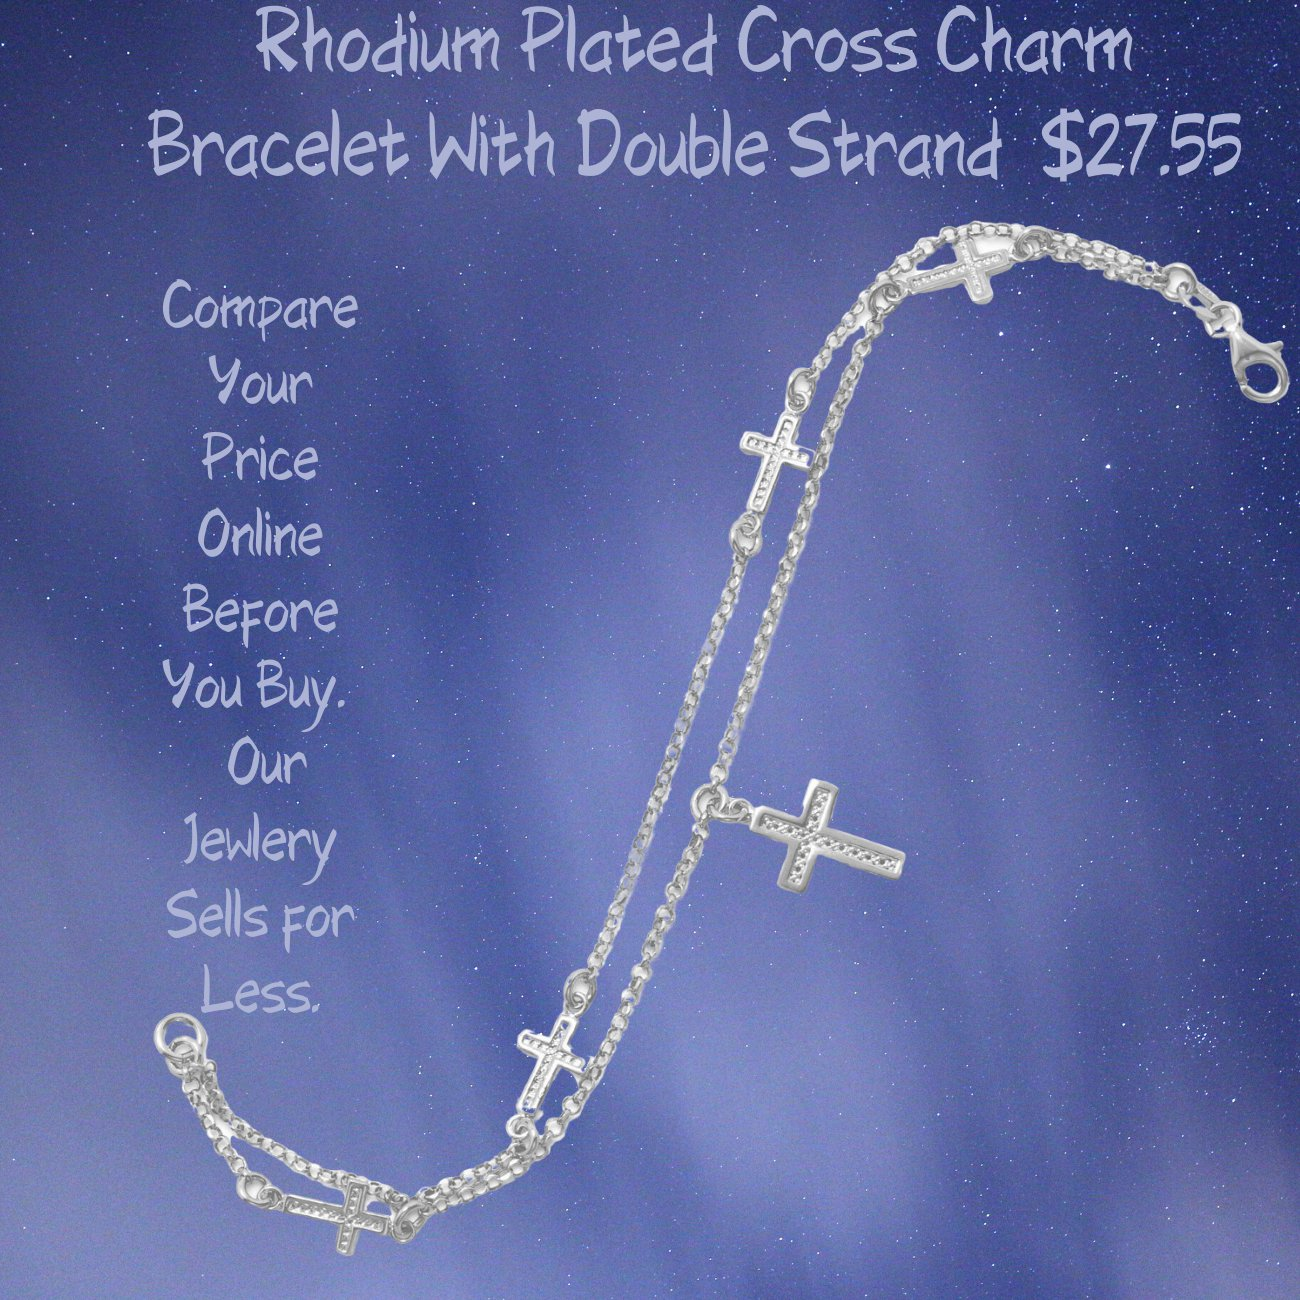 Rhodium Plated Sterling Silver Double Strand Cross Charm Bracelet Made In Italy!